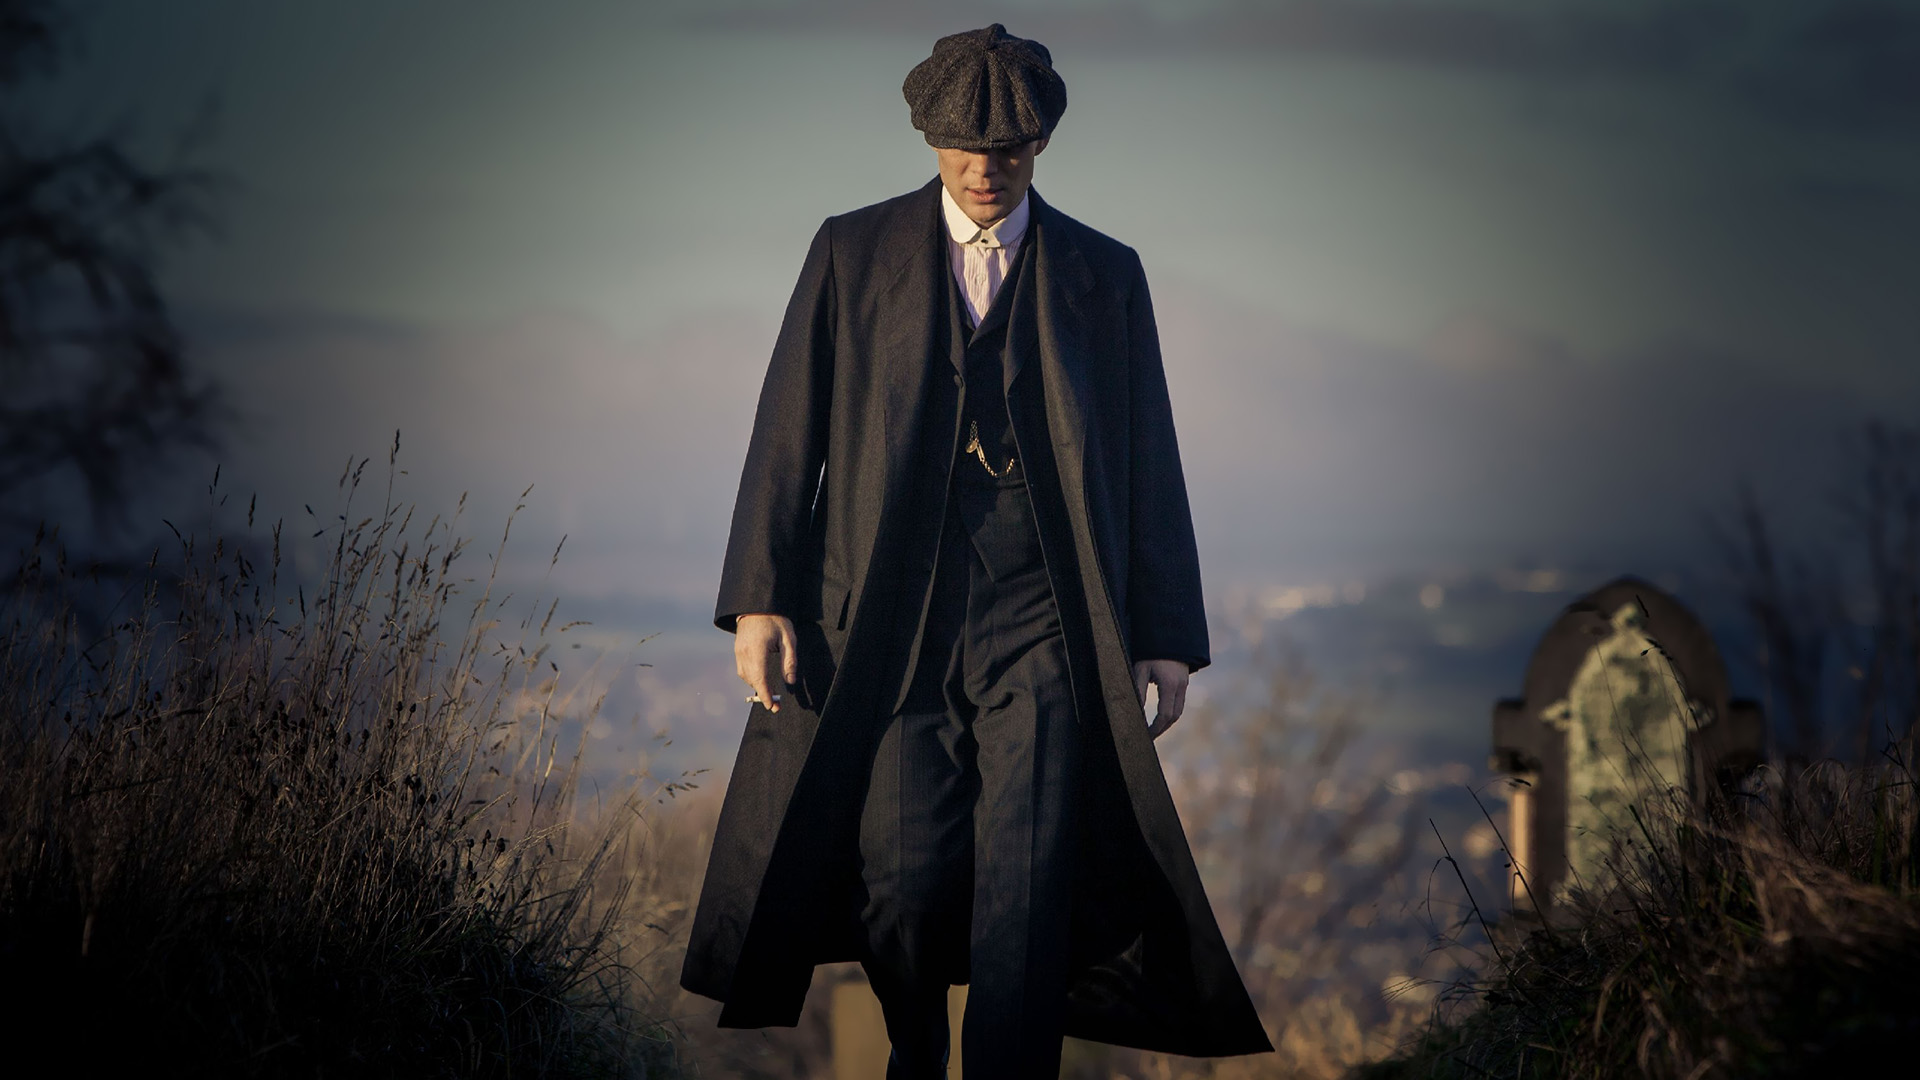 Peaky Blinders Wallpapers, Pictures, Images | 45 Phone ...